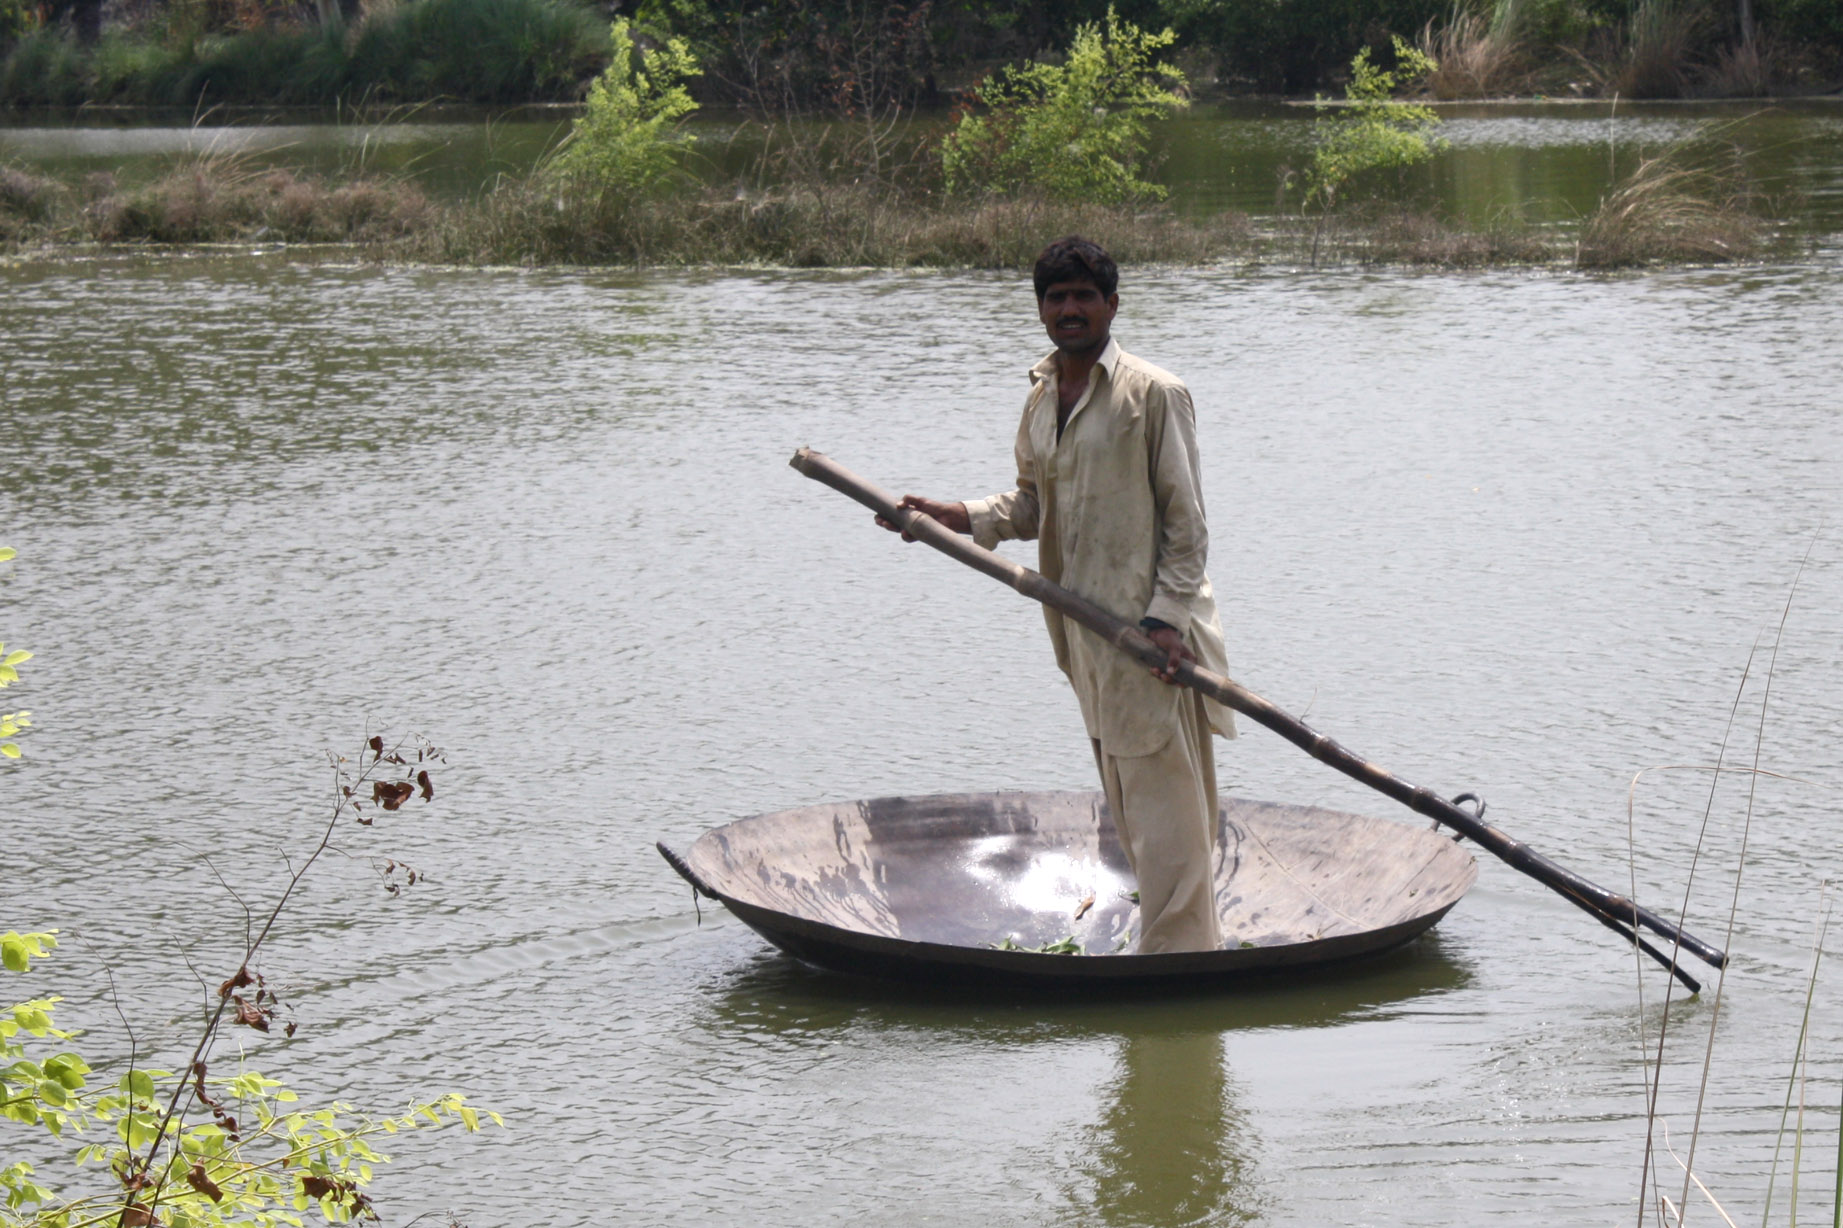 A man uses a large cooking pan as a boat near Reikhbaghwala village, Rajanpur district in Punjab, Pakistan